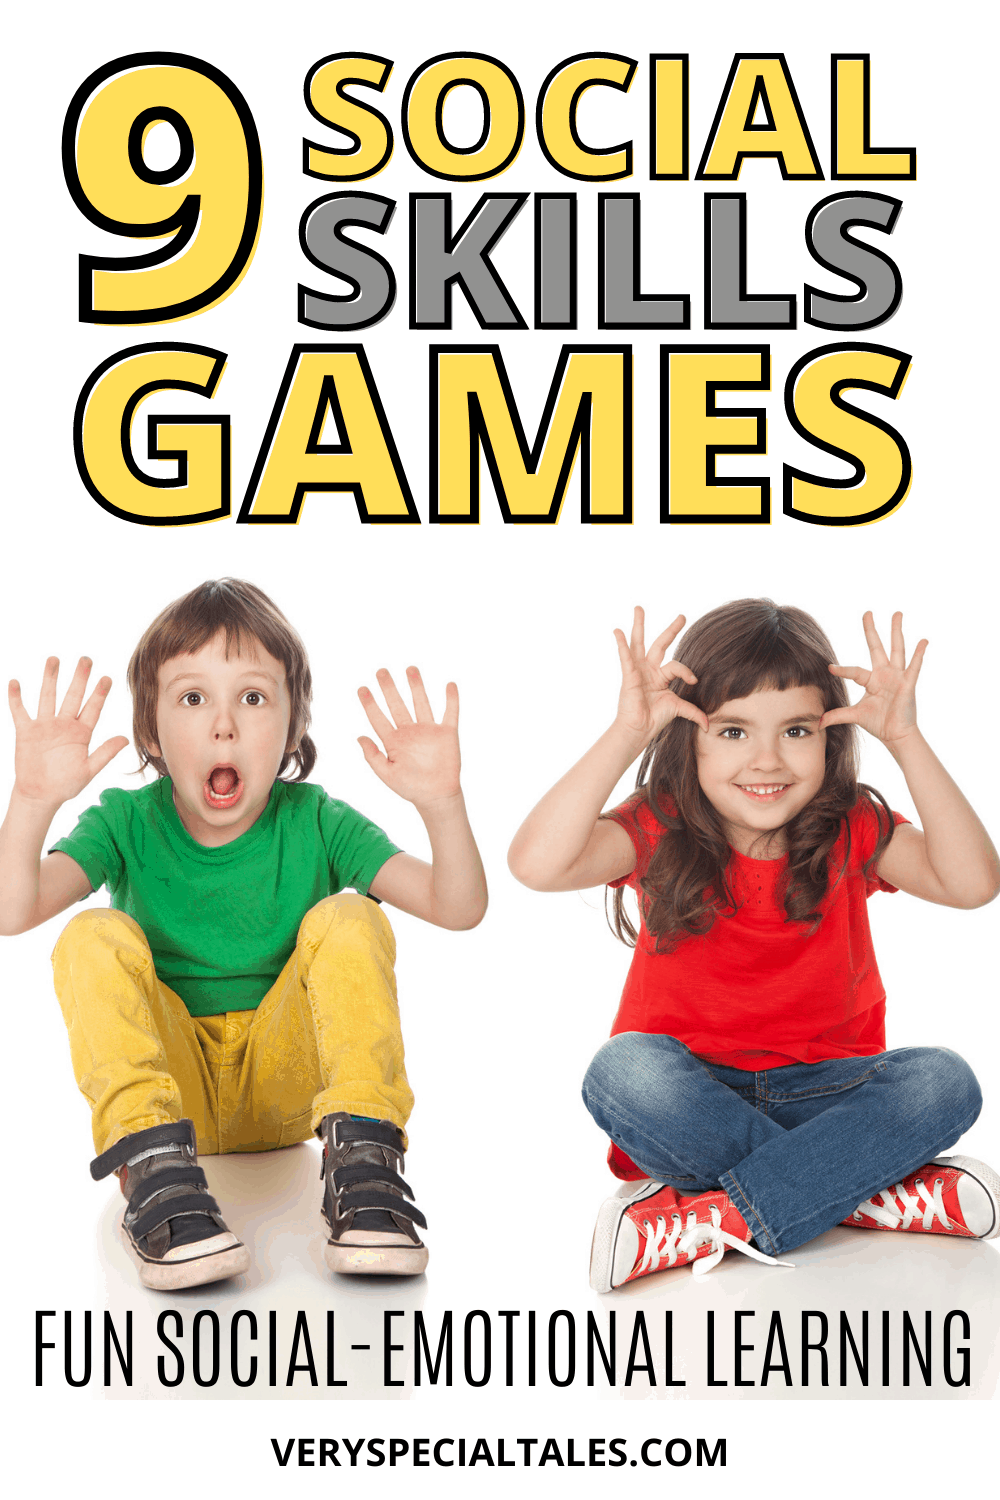 A pin presenting Social Skills Games Ideas with two kids making funny faces